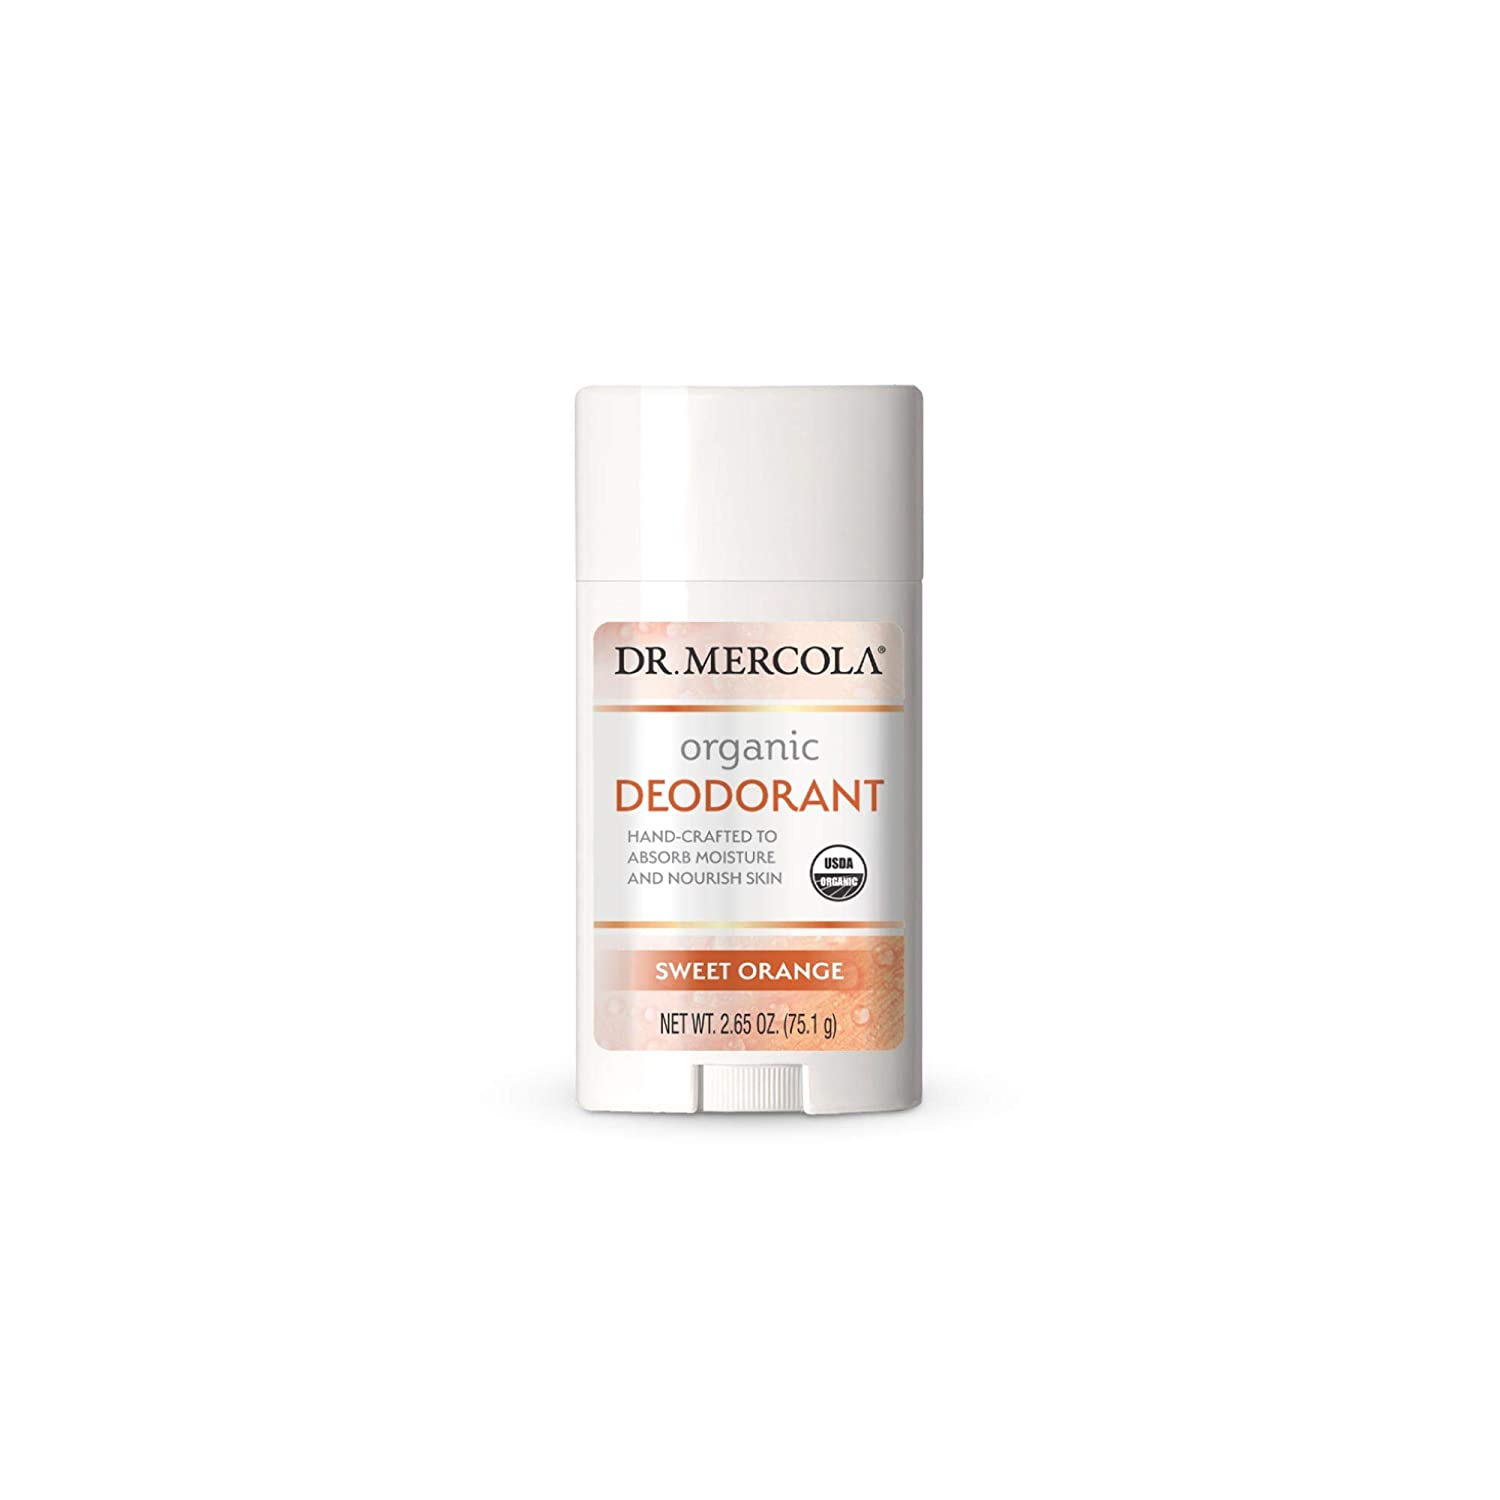 Dr. Mercola Organic Finally Outlet sale feature popular brand Deodorant Sweet Orange GMO oz Soy non 2.5